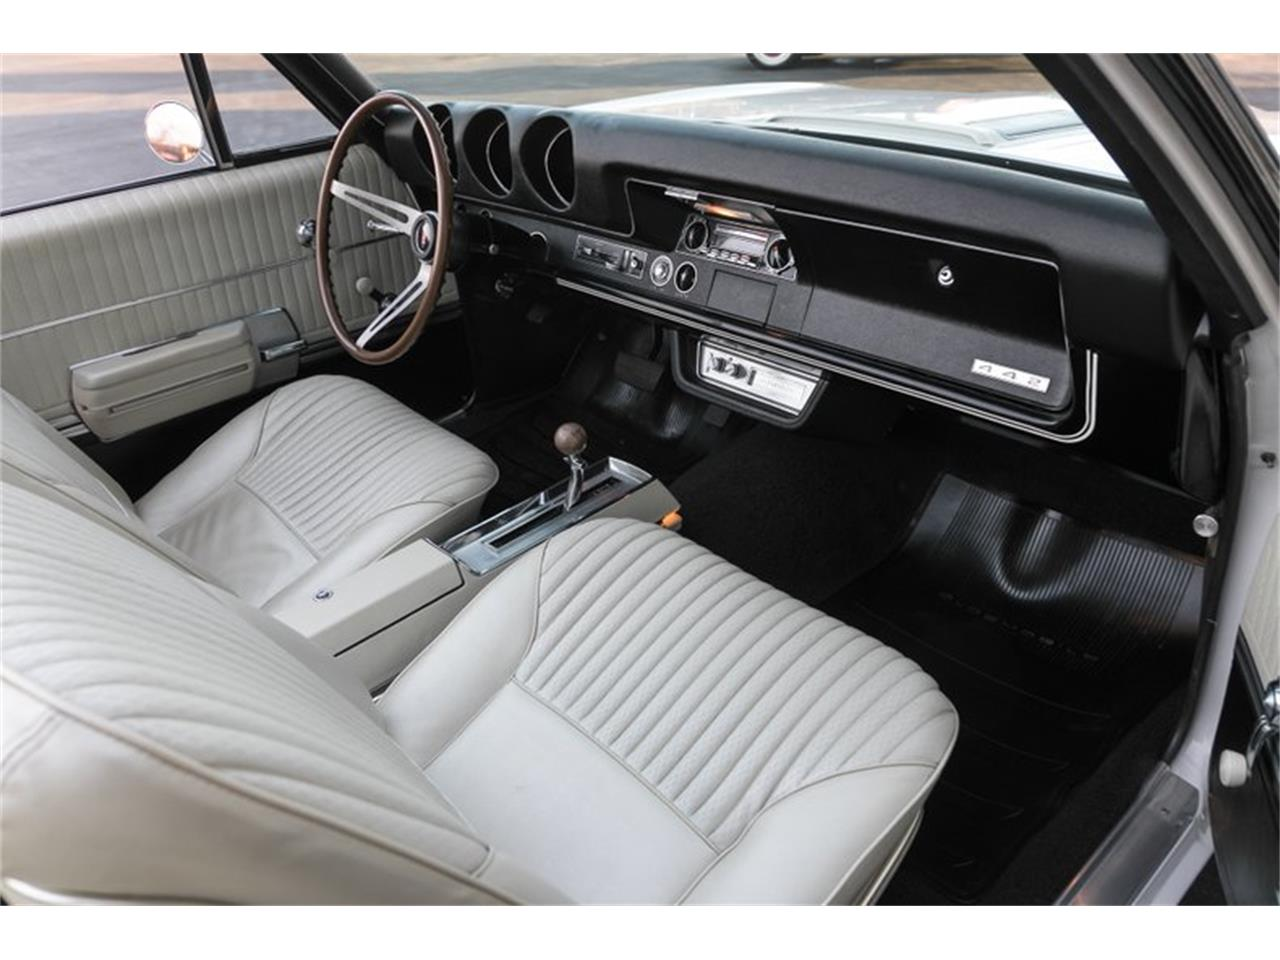 Large Picture of Classic '68 442 located in St. Charles Missouri - $74,995.00 Offered by Fast Lane Classic Cars Inc. - PH8S